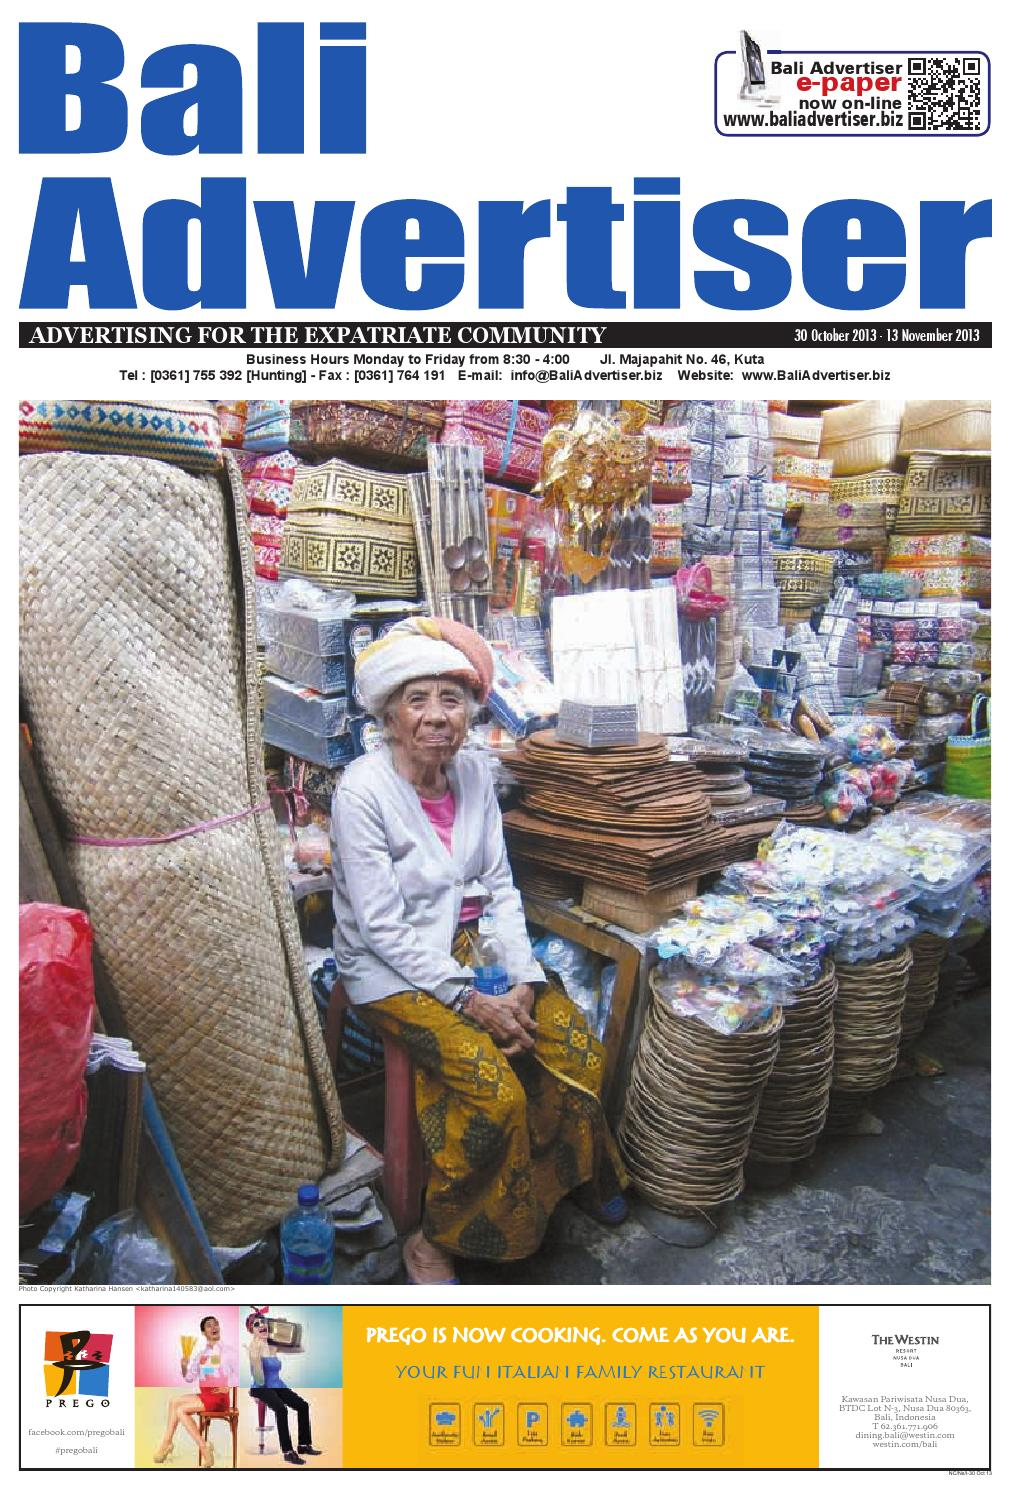 BA 30 October 2013 by Bali Advertiser - issuu